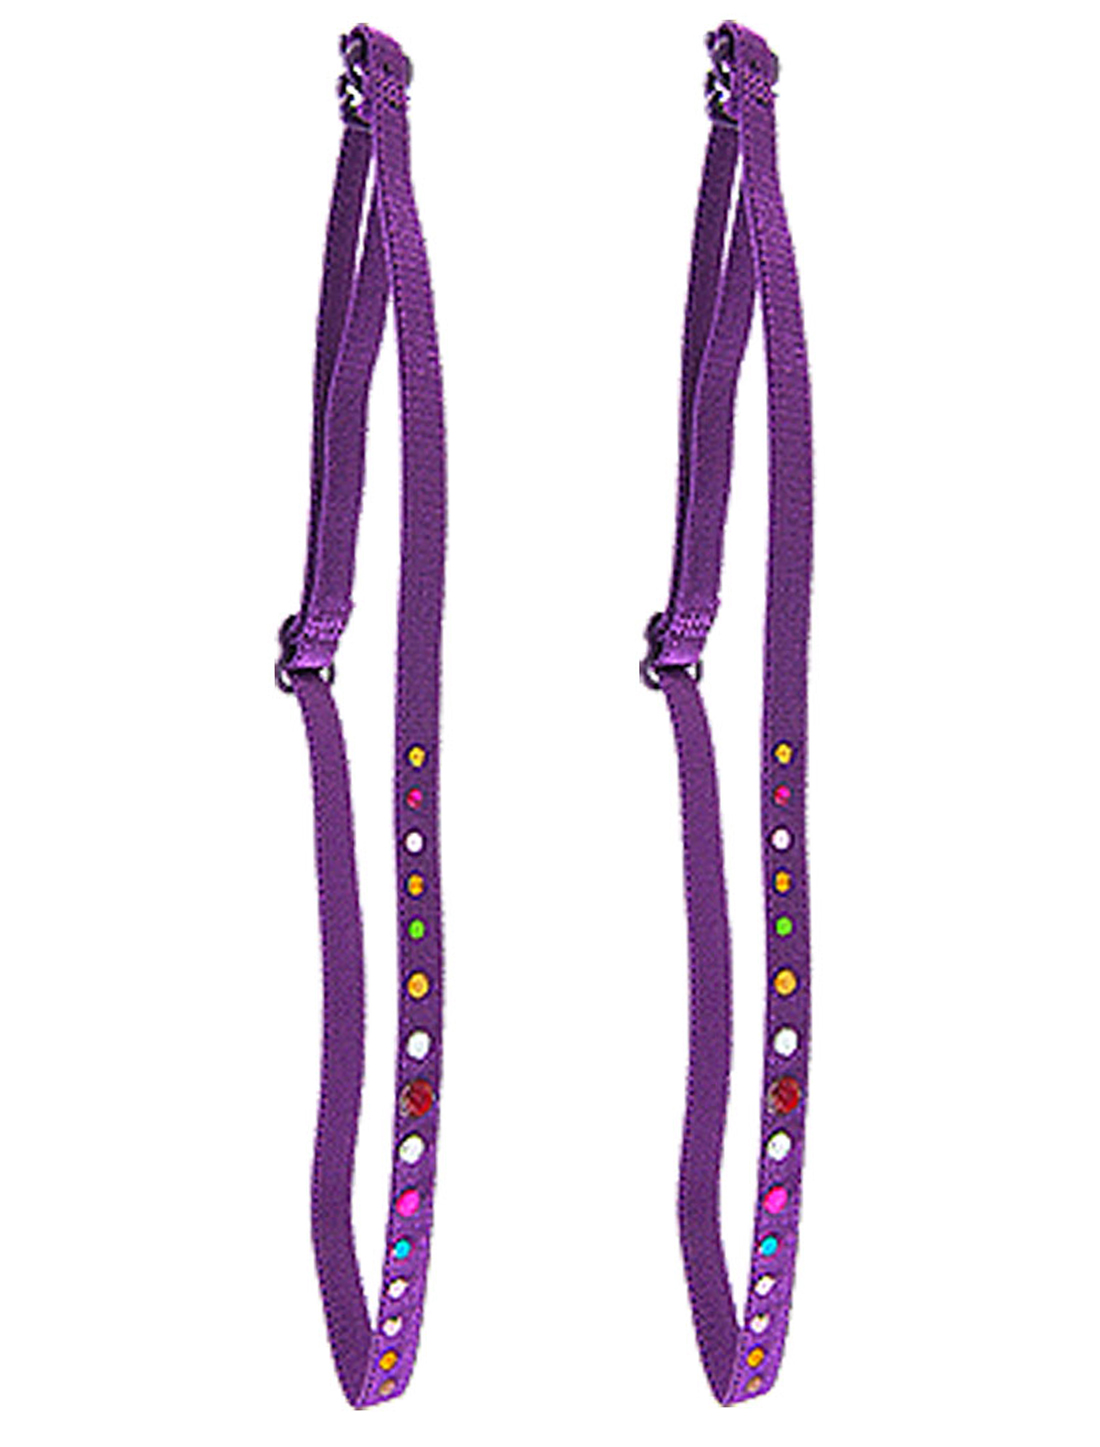 Colorful Rhinestone Decor Adjustable Bra Strap Purple